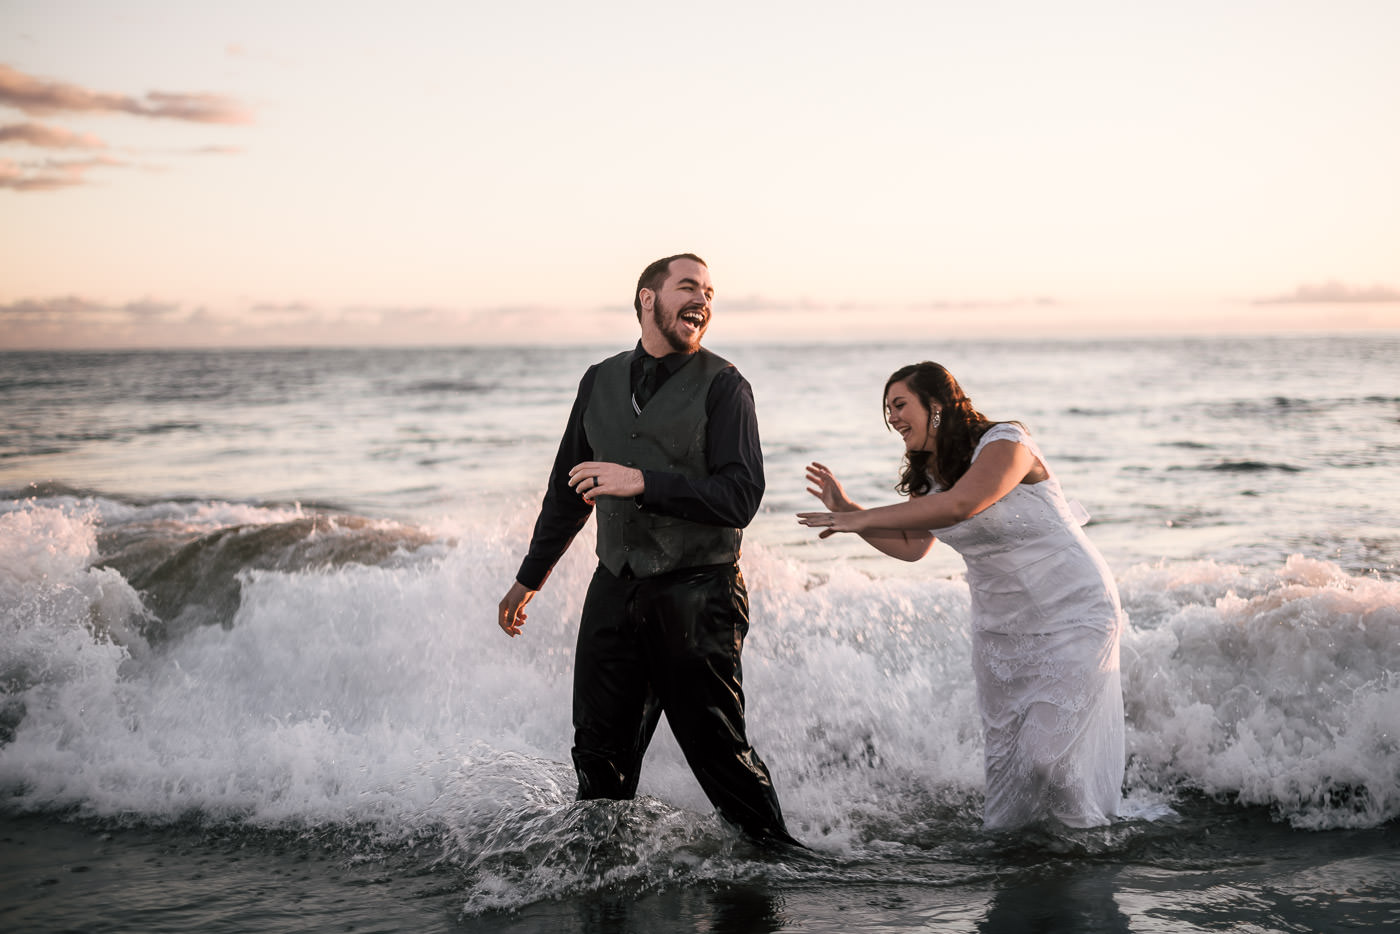 Bride chases groom through the crashing waves at their intimate Laguna Beach elopement at sunset.